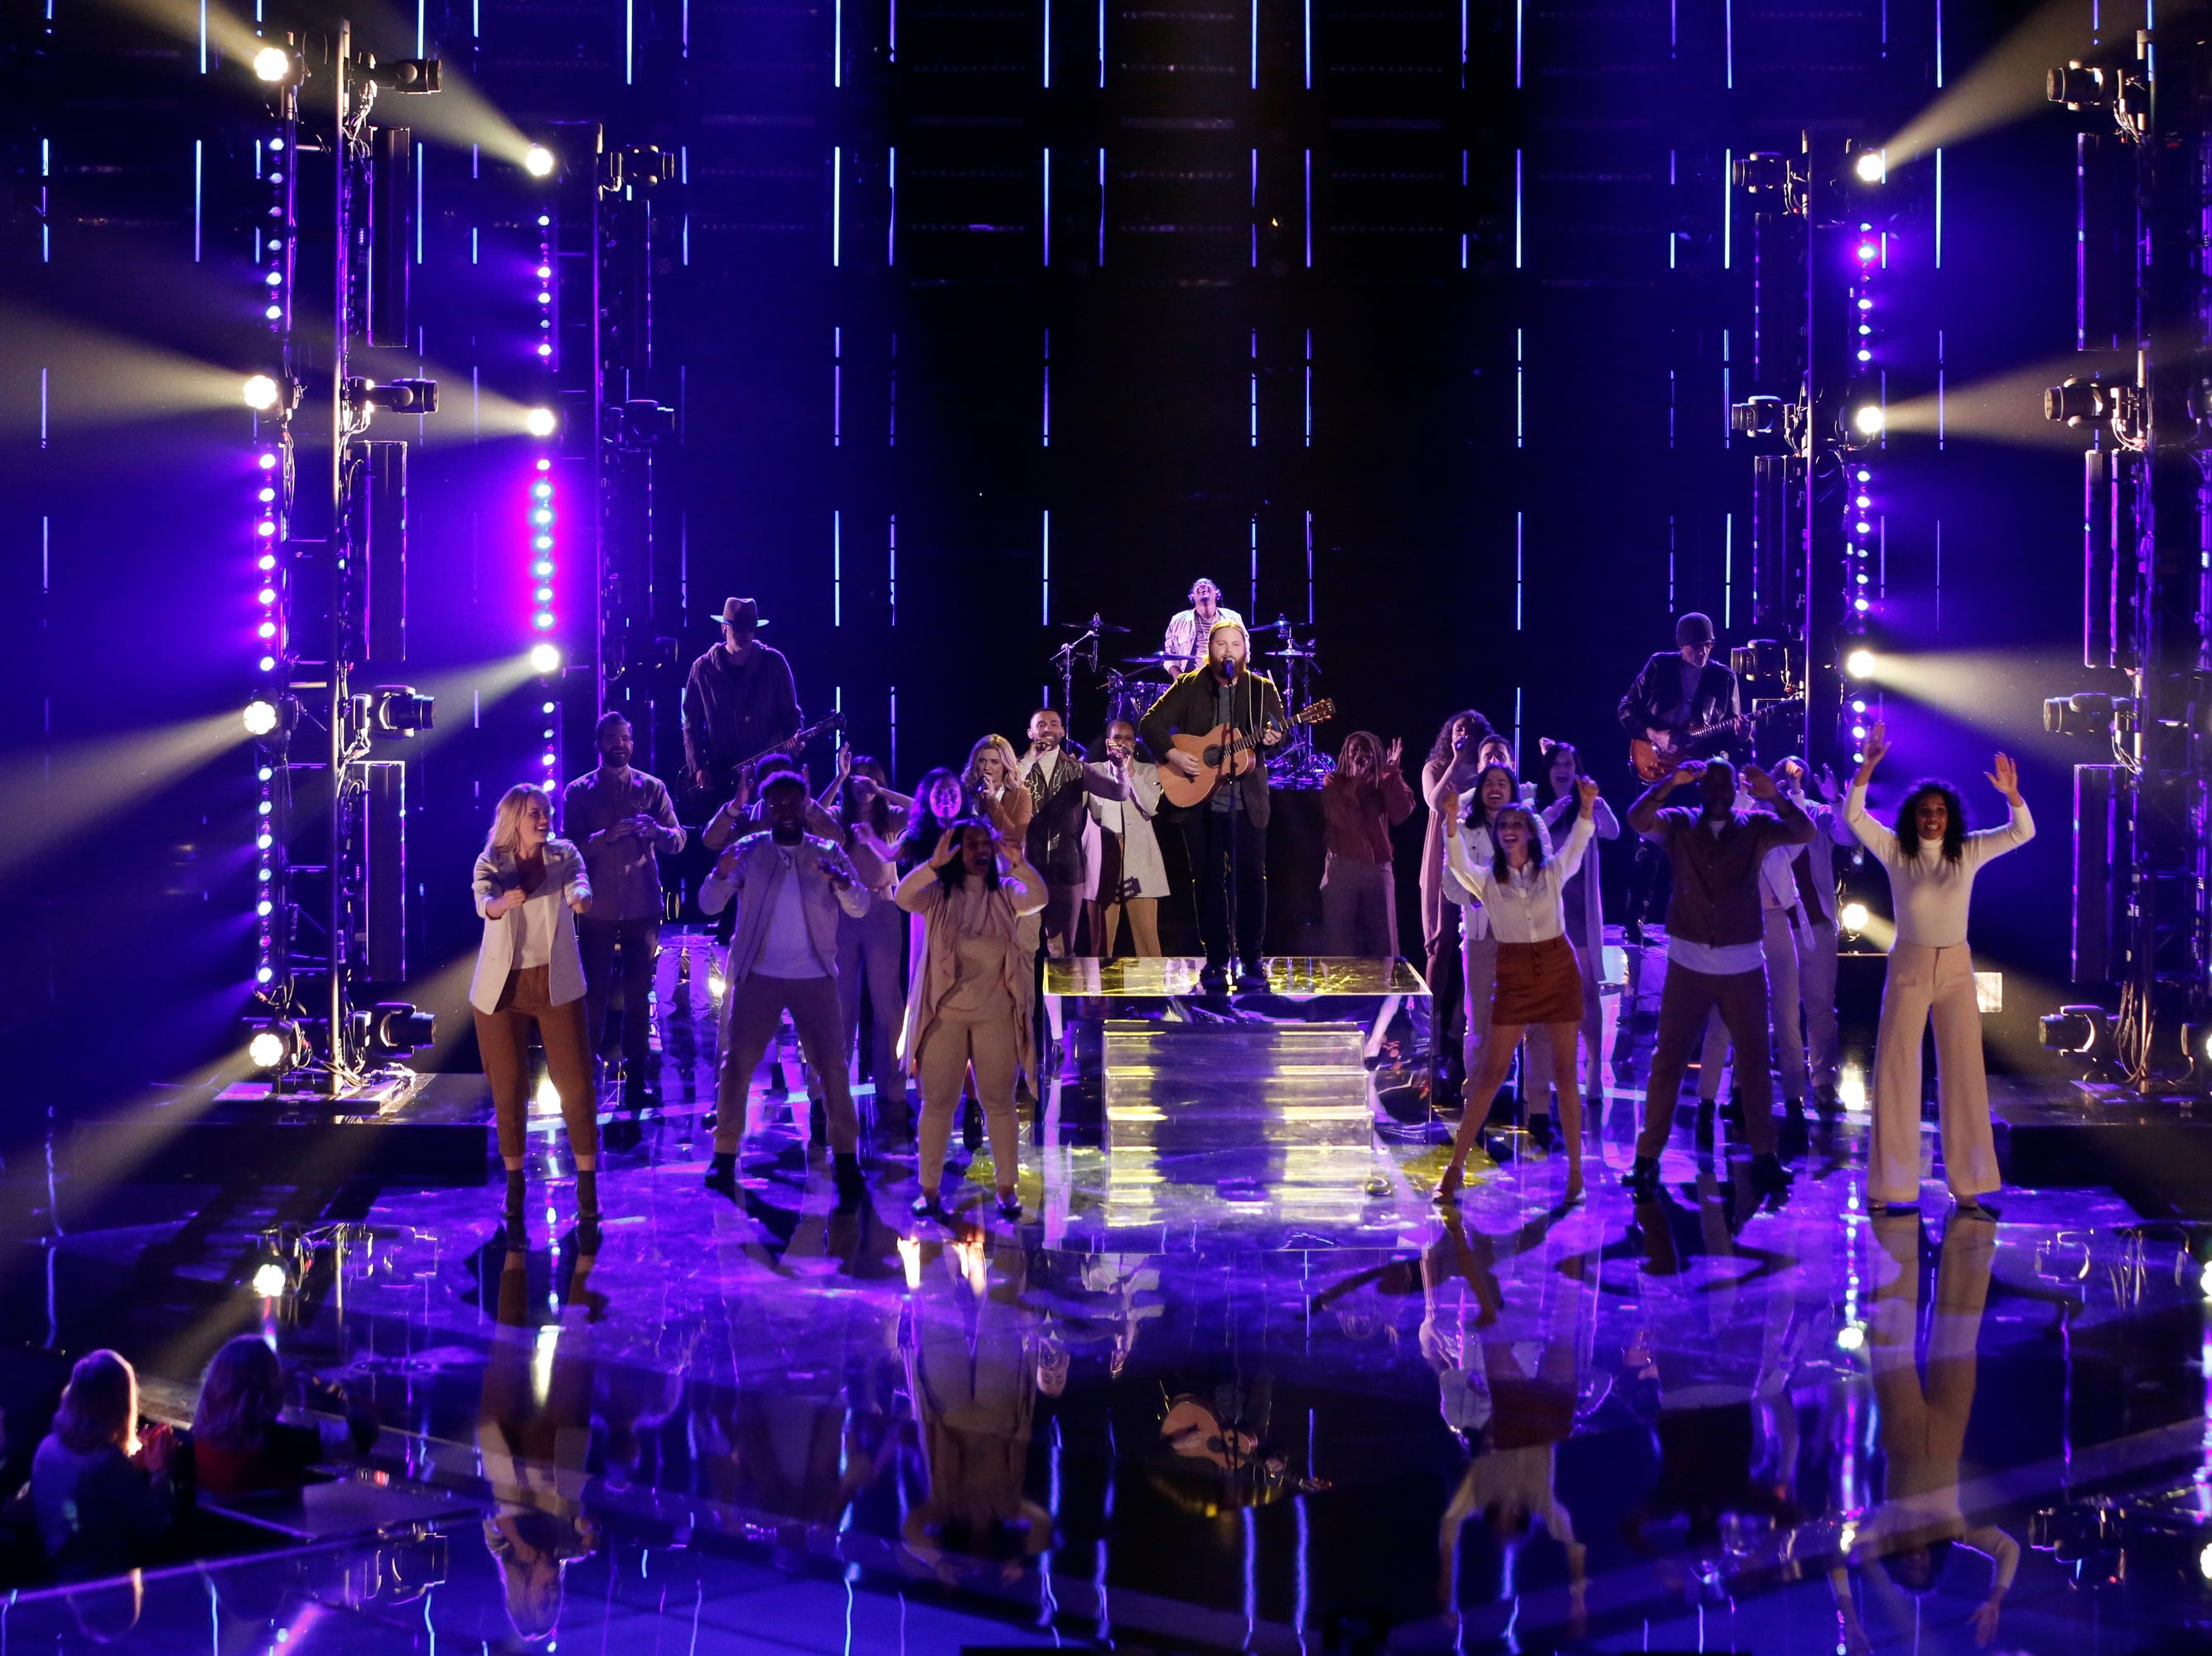 """Supported by a choir, Chris Kroeze debuted a moving original tune, """"Human,"""" during part one of """"The Voice"""" finale on Dec. 17."""